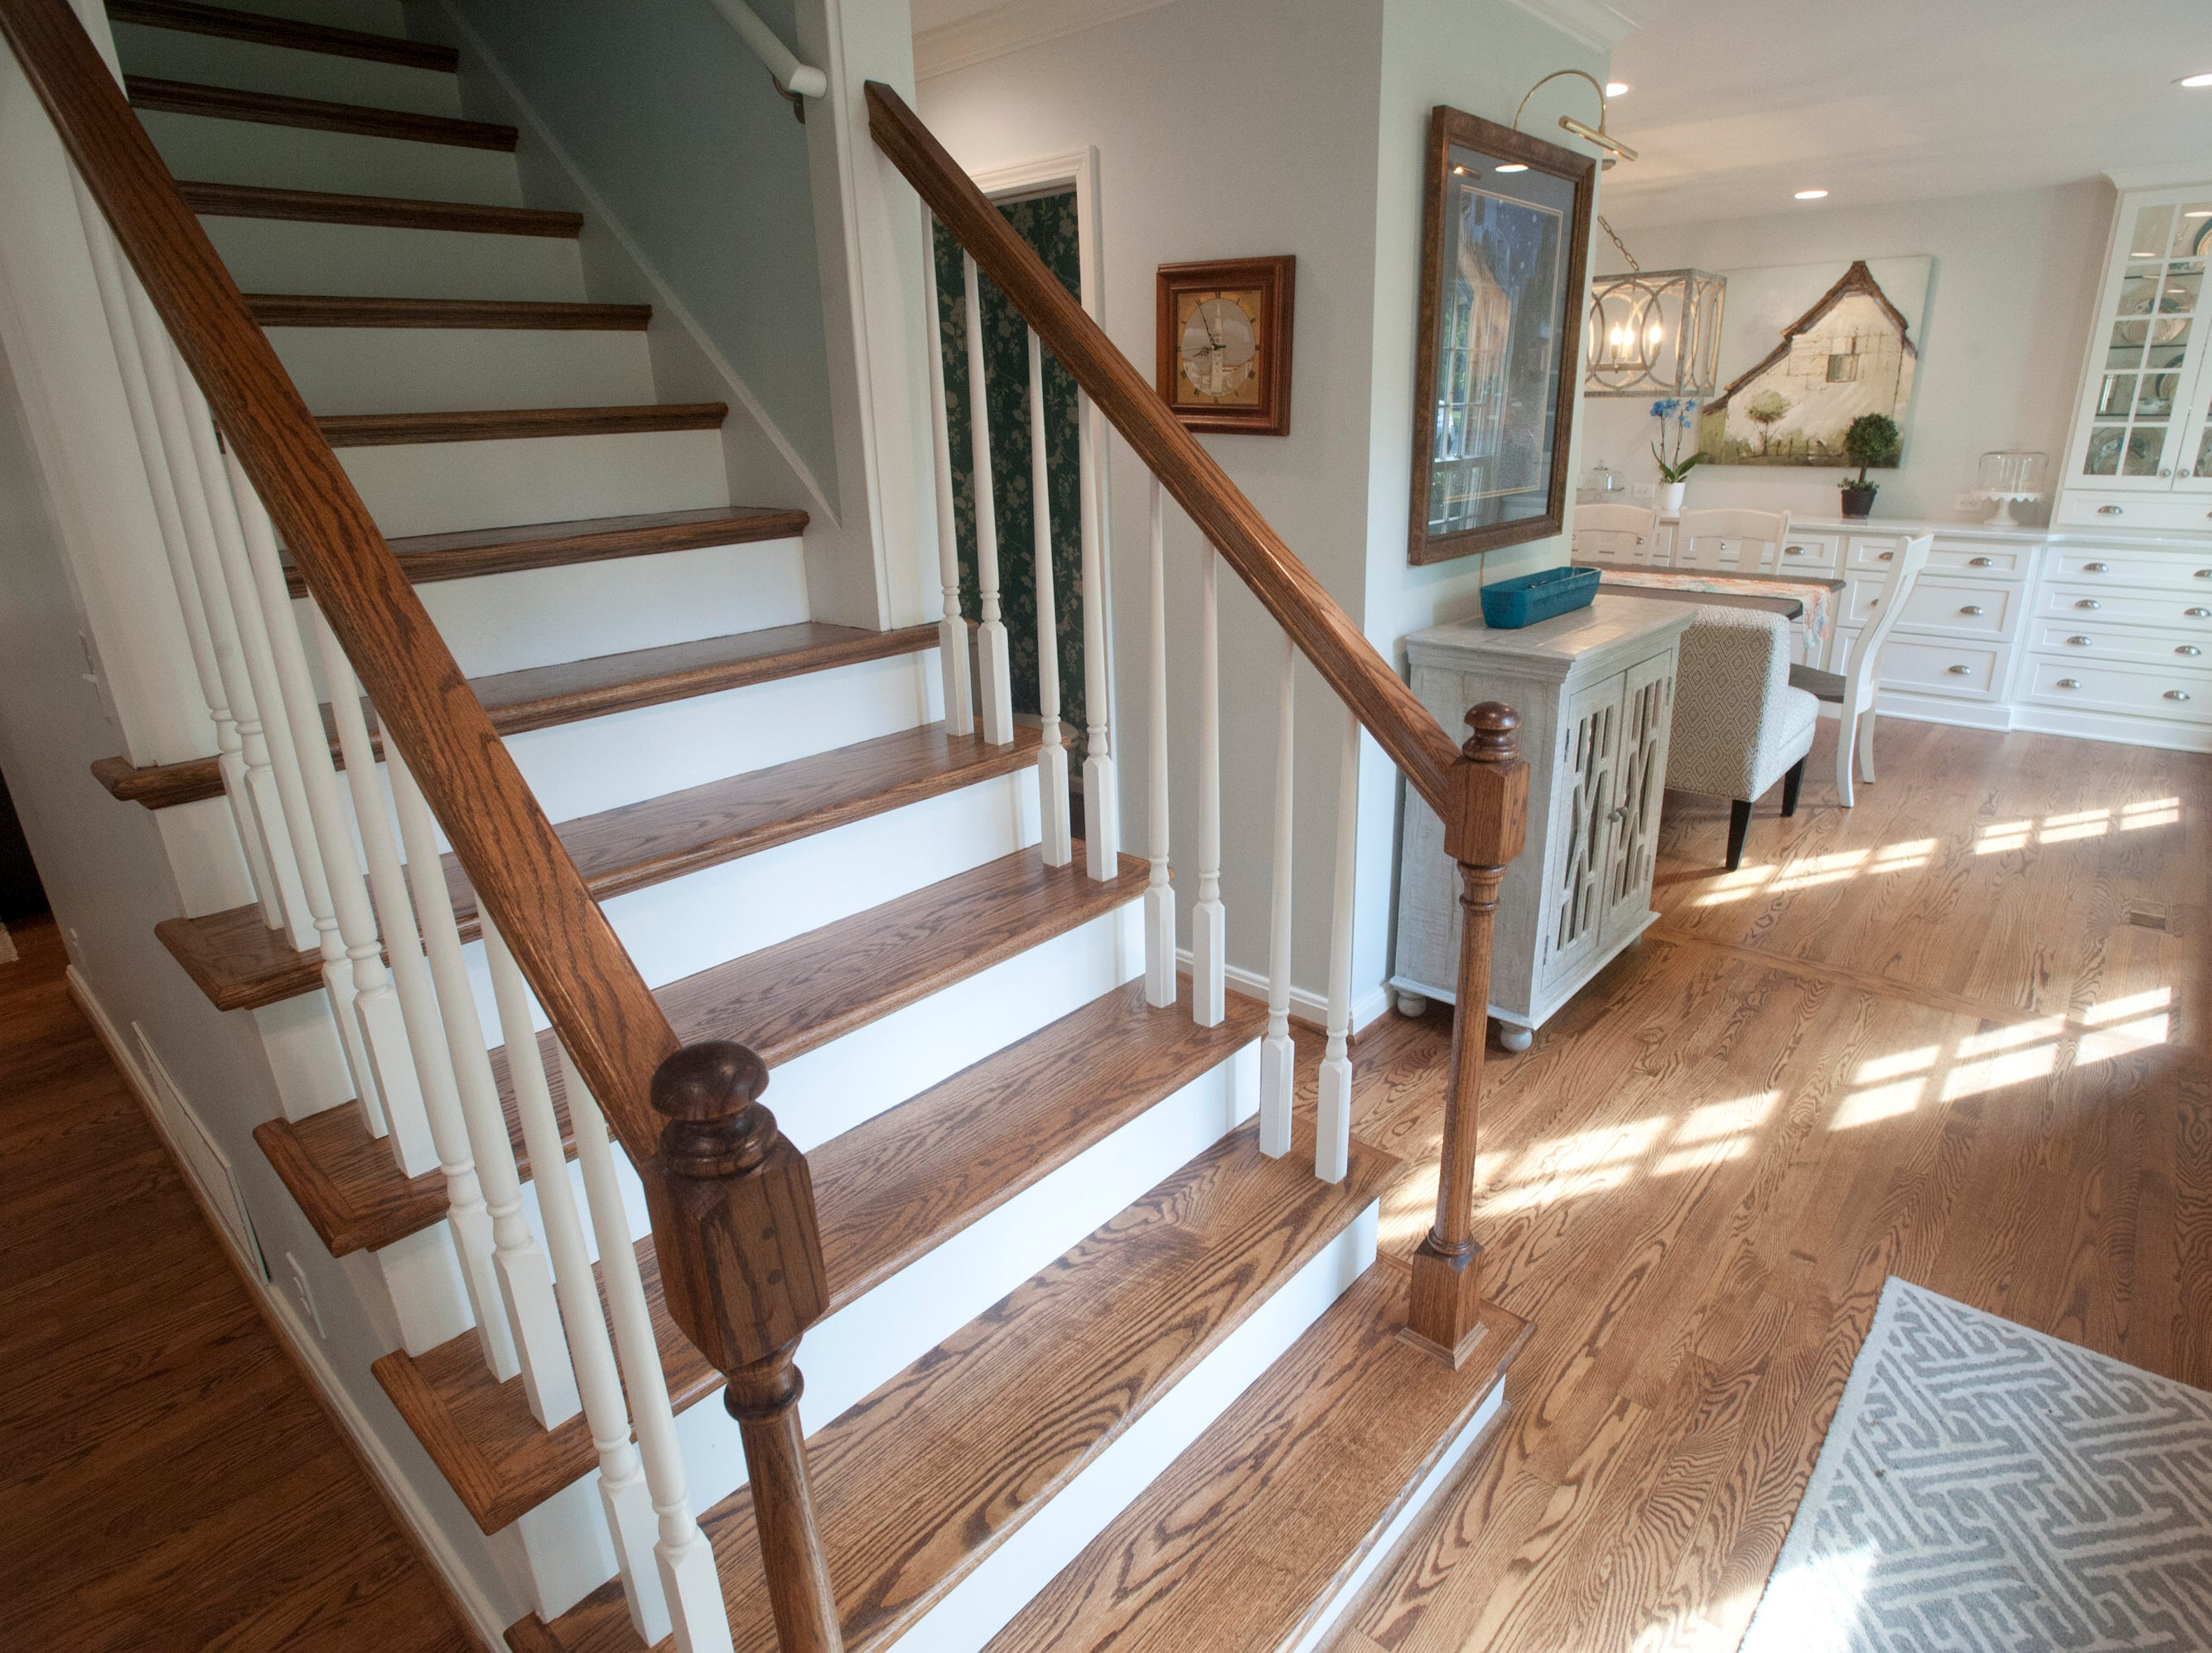 The new open stairway at the home of Jean Hodges which has recently been renovated by Bailey Remodeling, looks into the dining room.